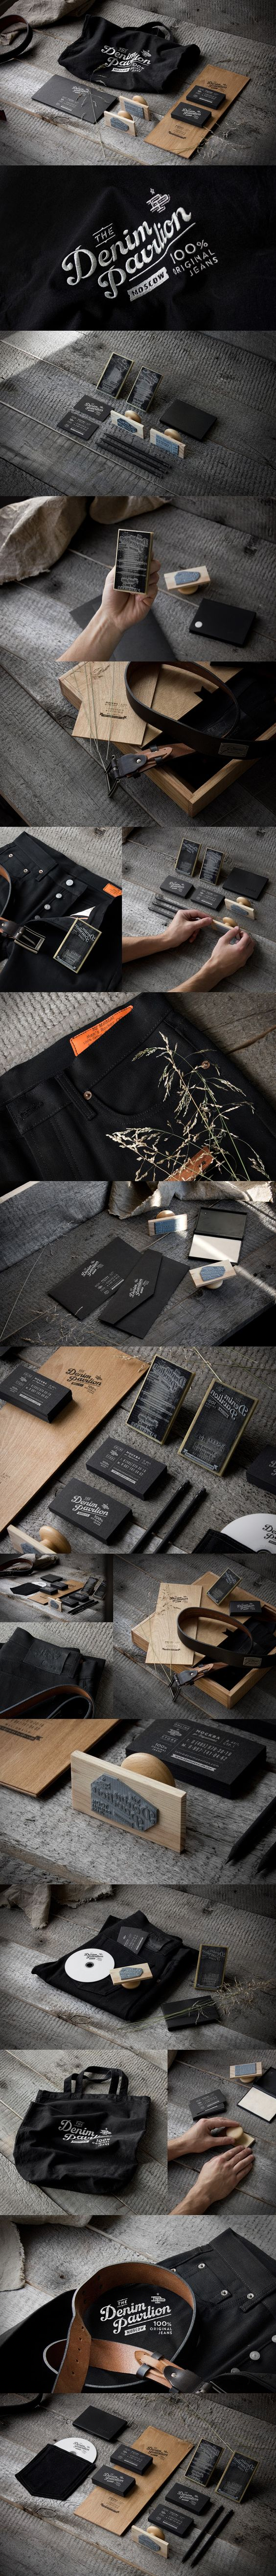 the-branding-journal-manly-visual-identity-design-the-denim-pavillon